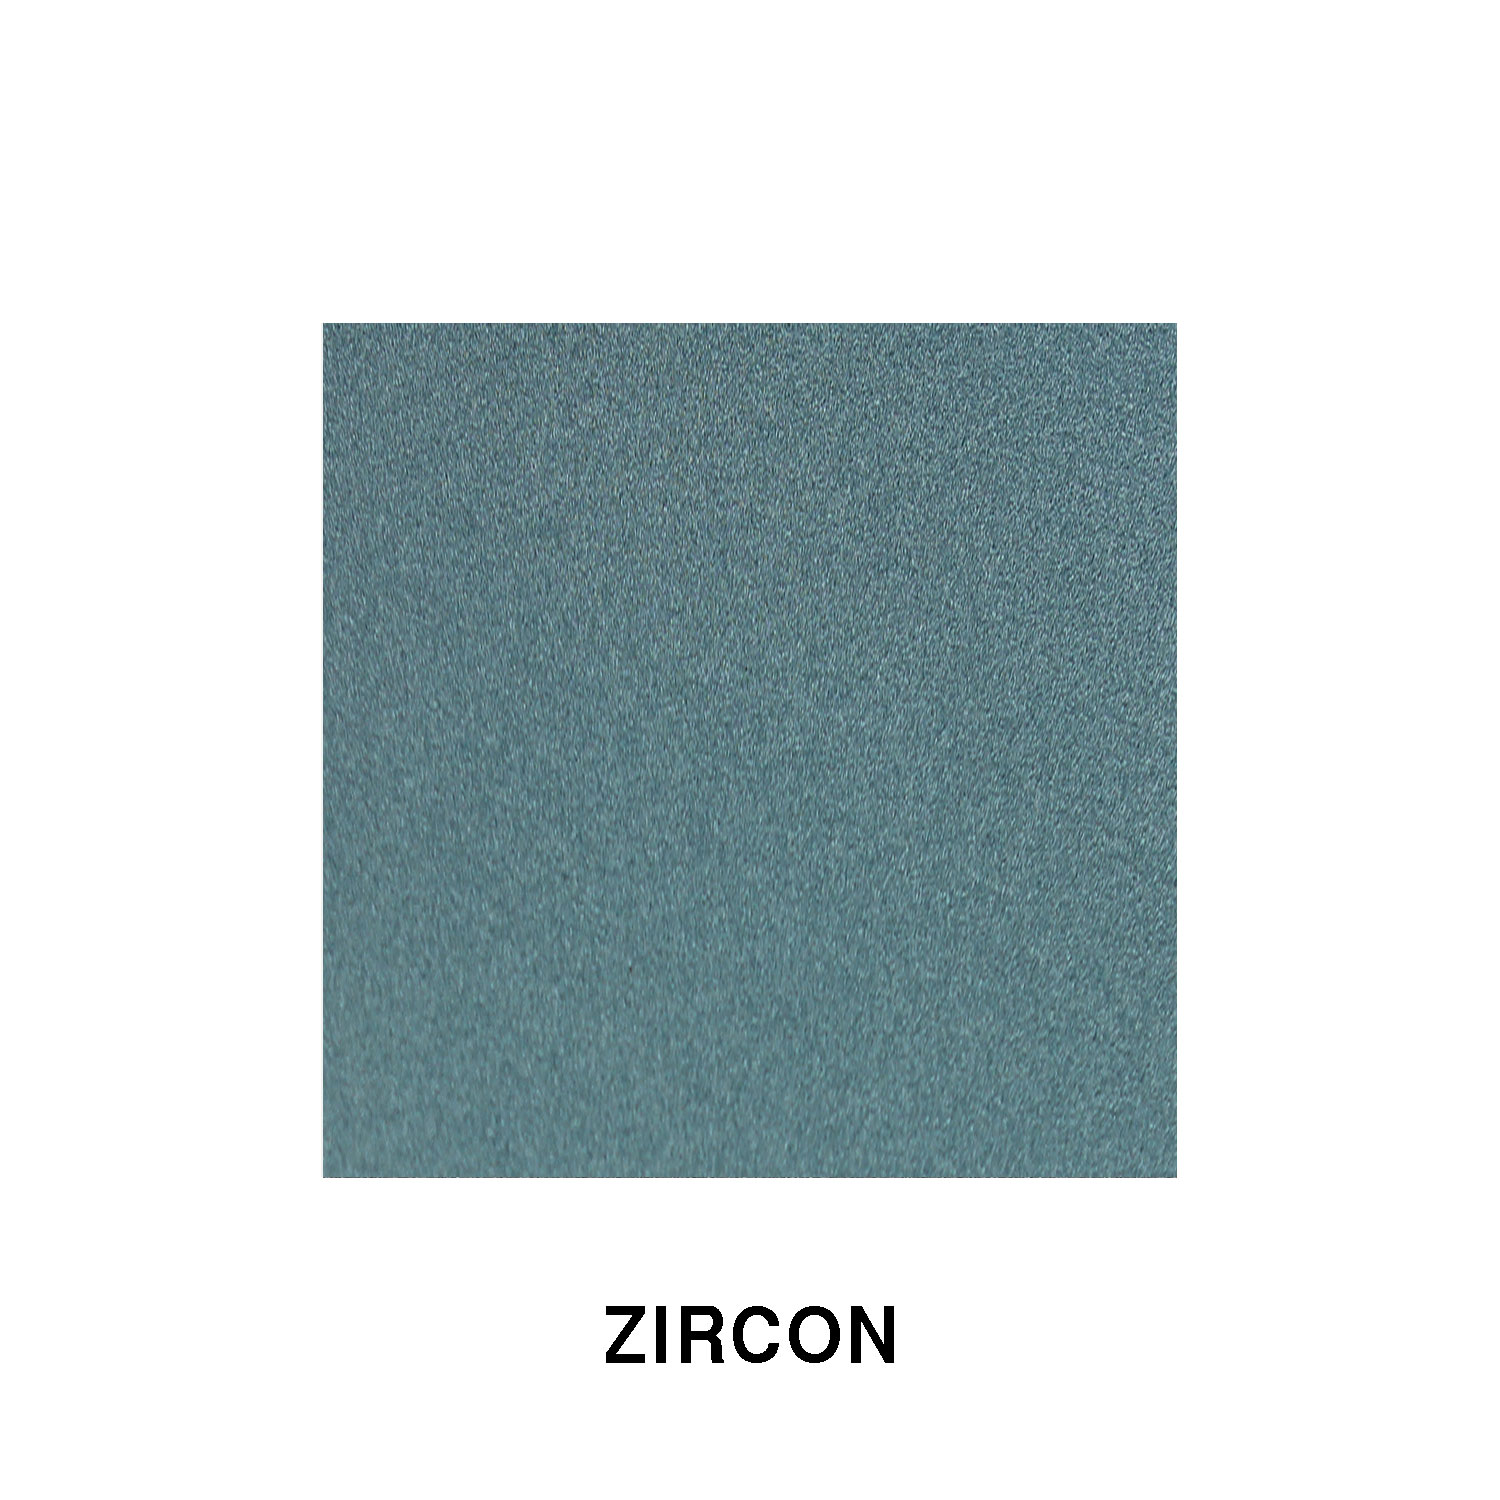 Zircon Fiberglass Finish